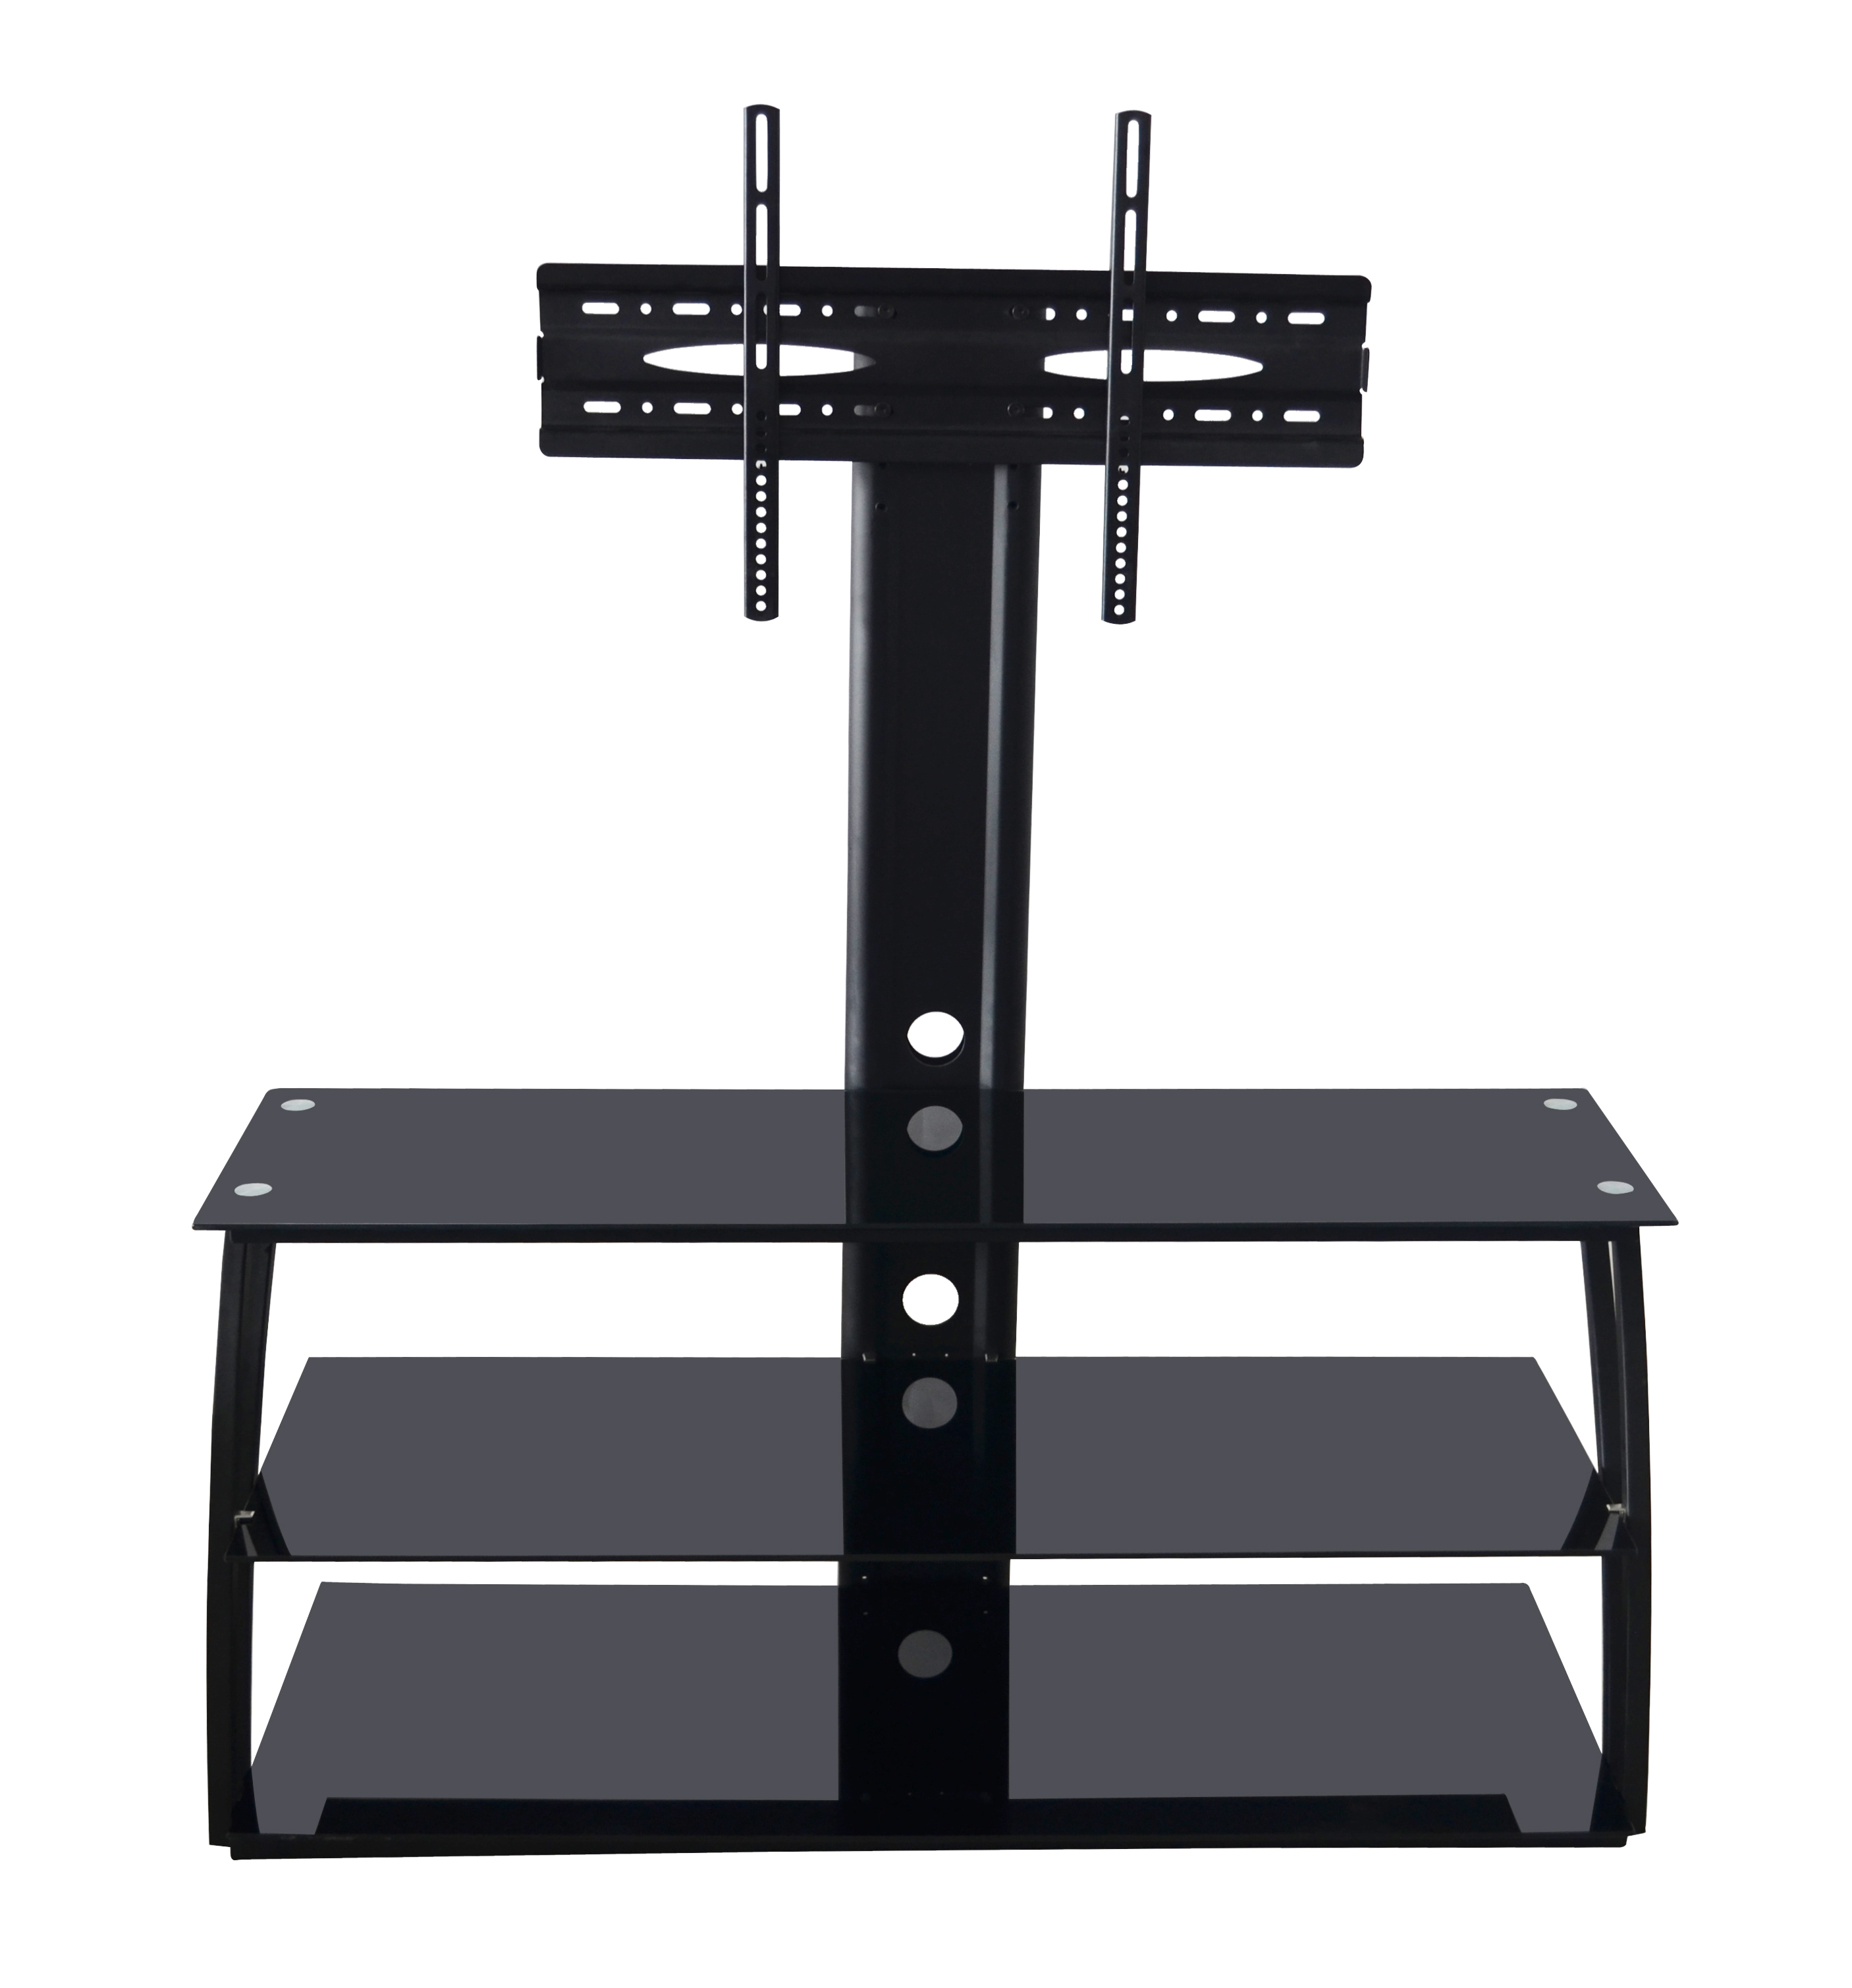 Image of ADBA TV Stand Entertainment Center with Mount holds upto 70 Inch Screens, VESA 100x100 to 600x400, Glass Shelving, 88 Lbs, Black Metal